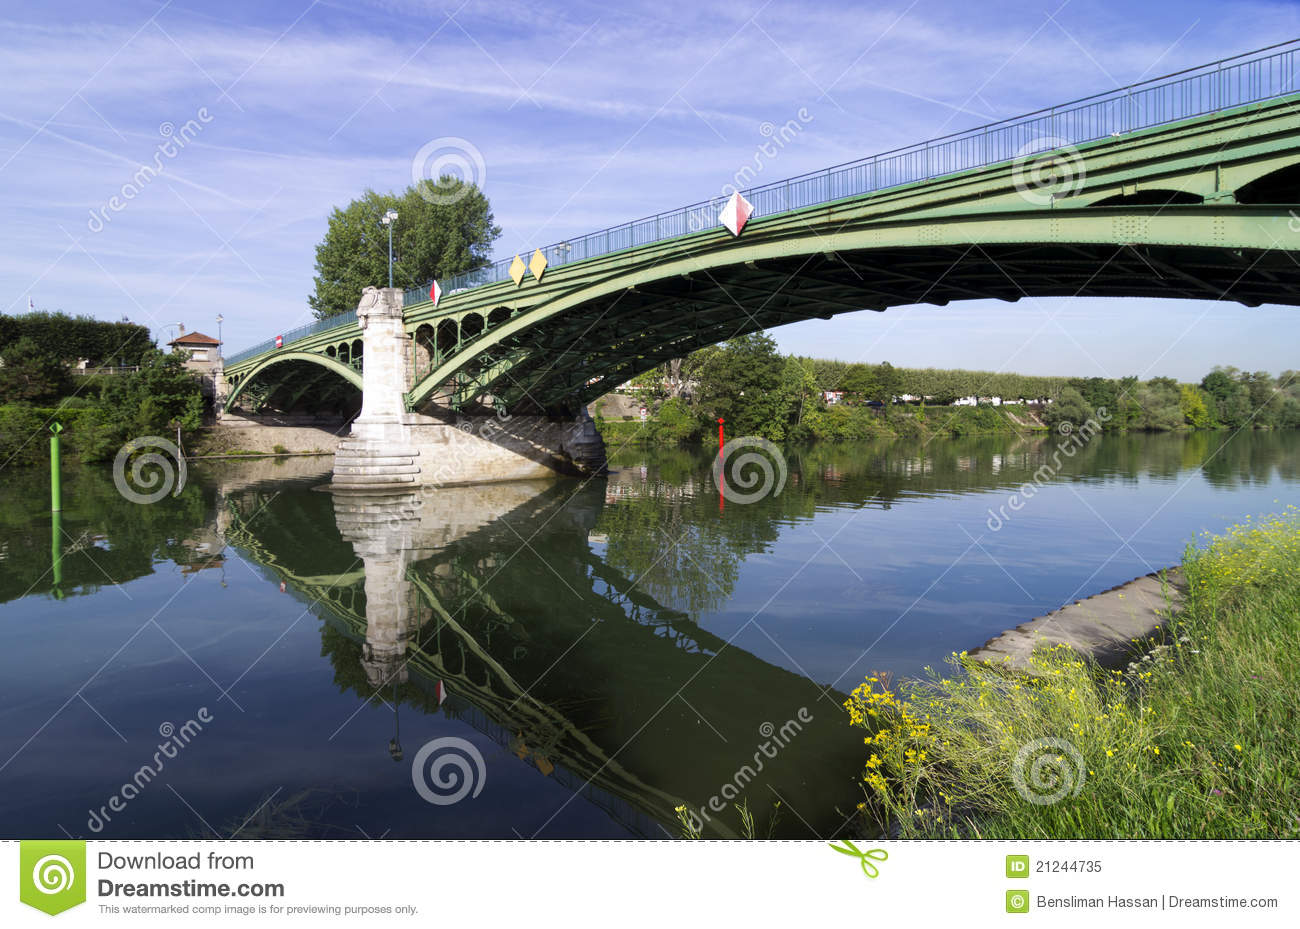 Maison alfort bridge in paris suburbs royalty free stock for Asa maison alfort